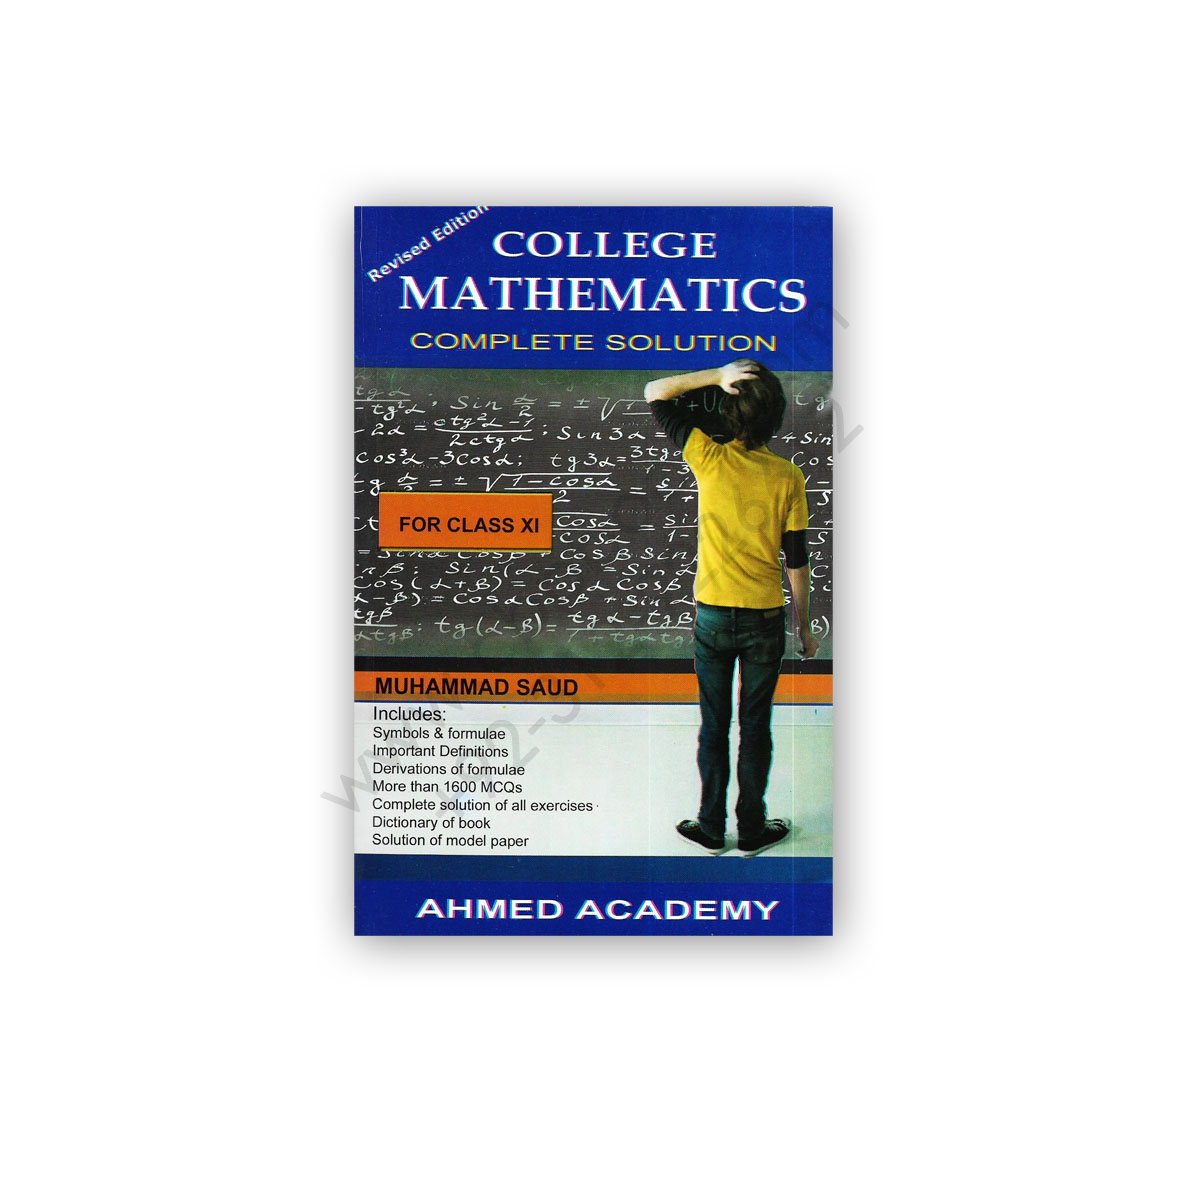 college mathematics for class xi by muhammad saud - ahmed academy